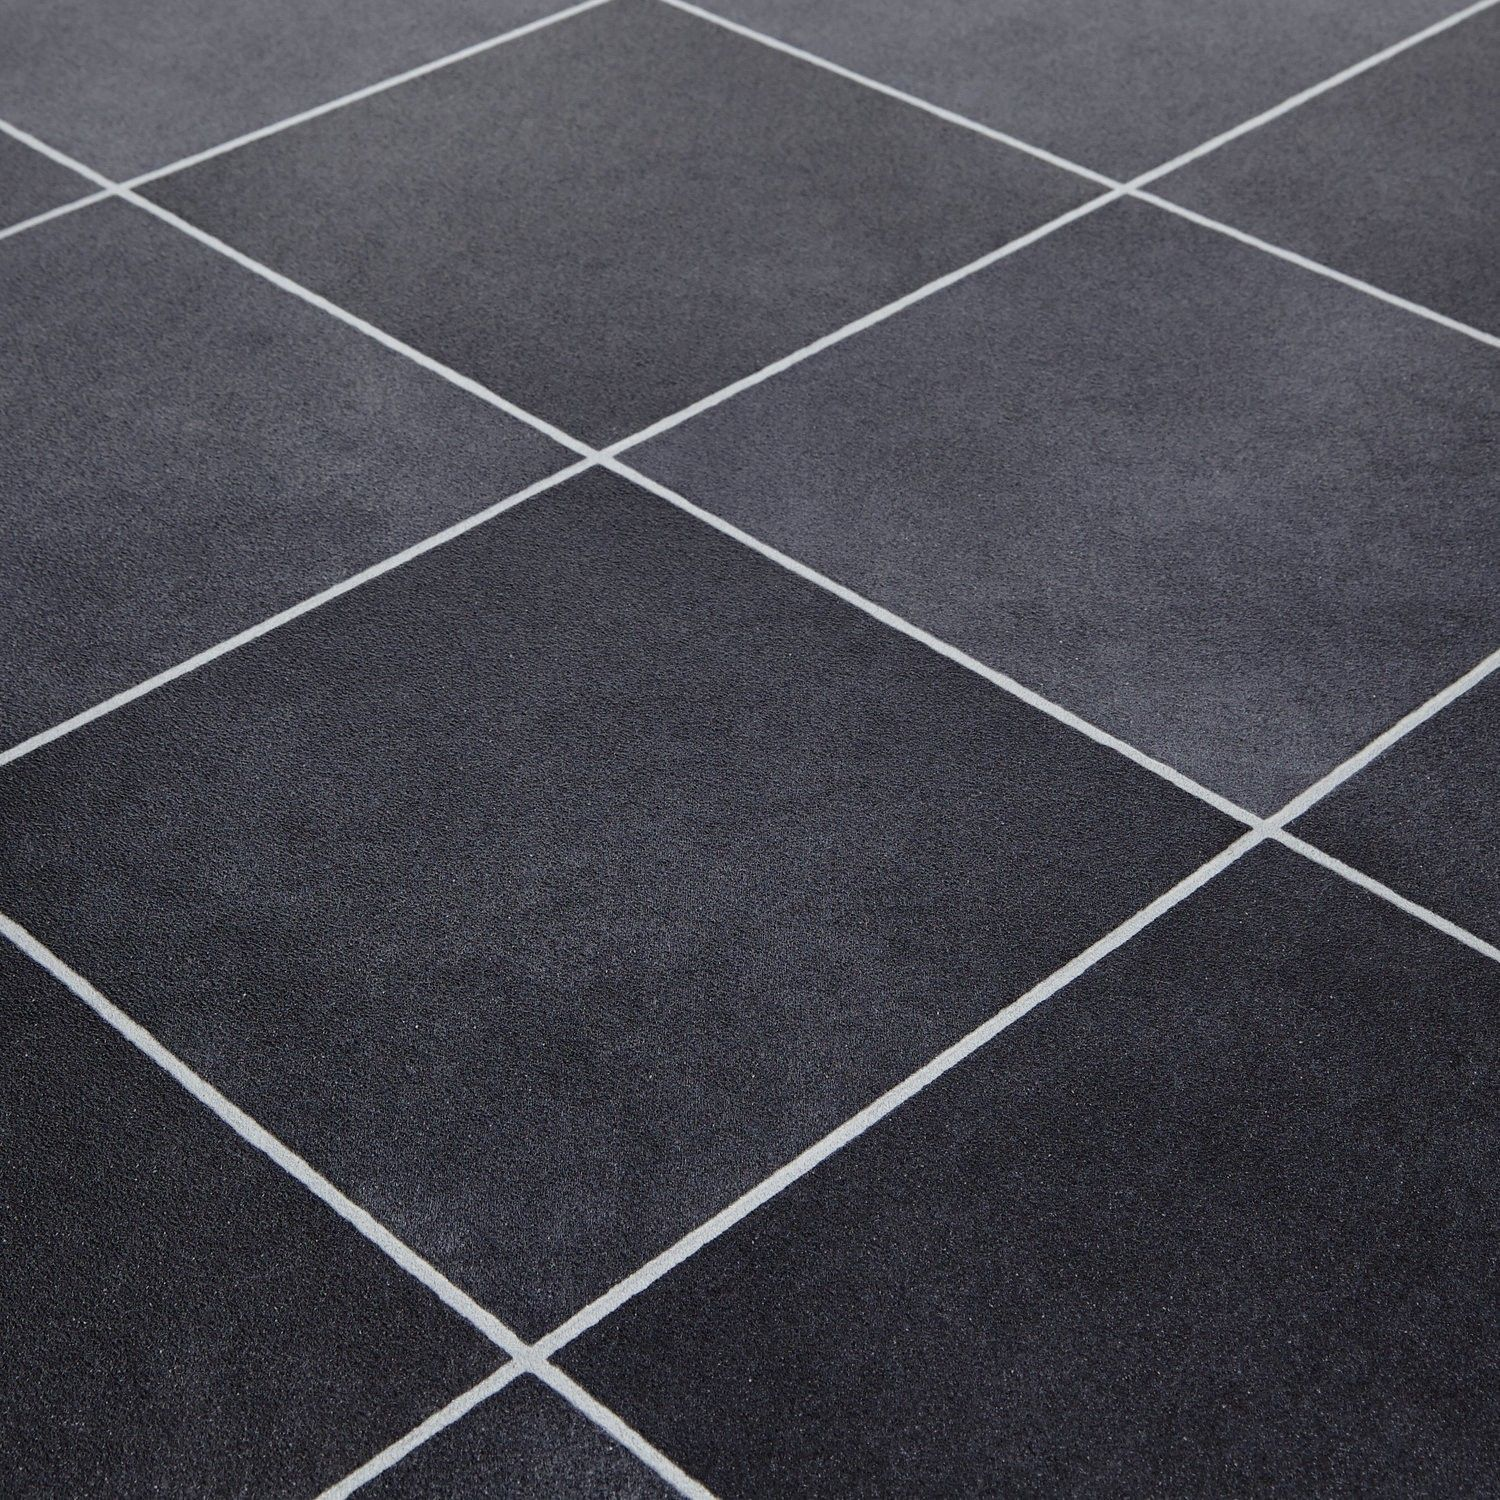 Mardi gras 598 durango black stone tile vinyl flooring for Black vinyl floor tiles